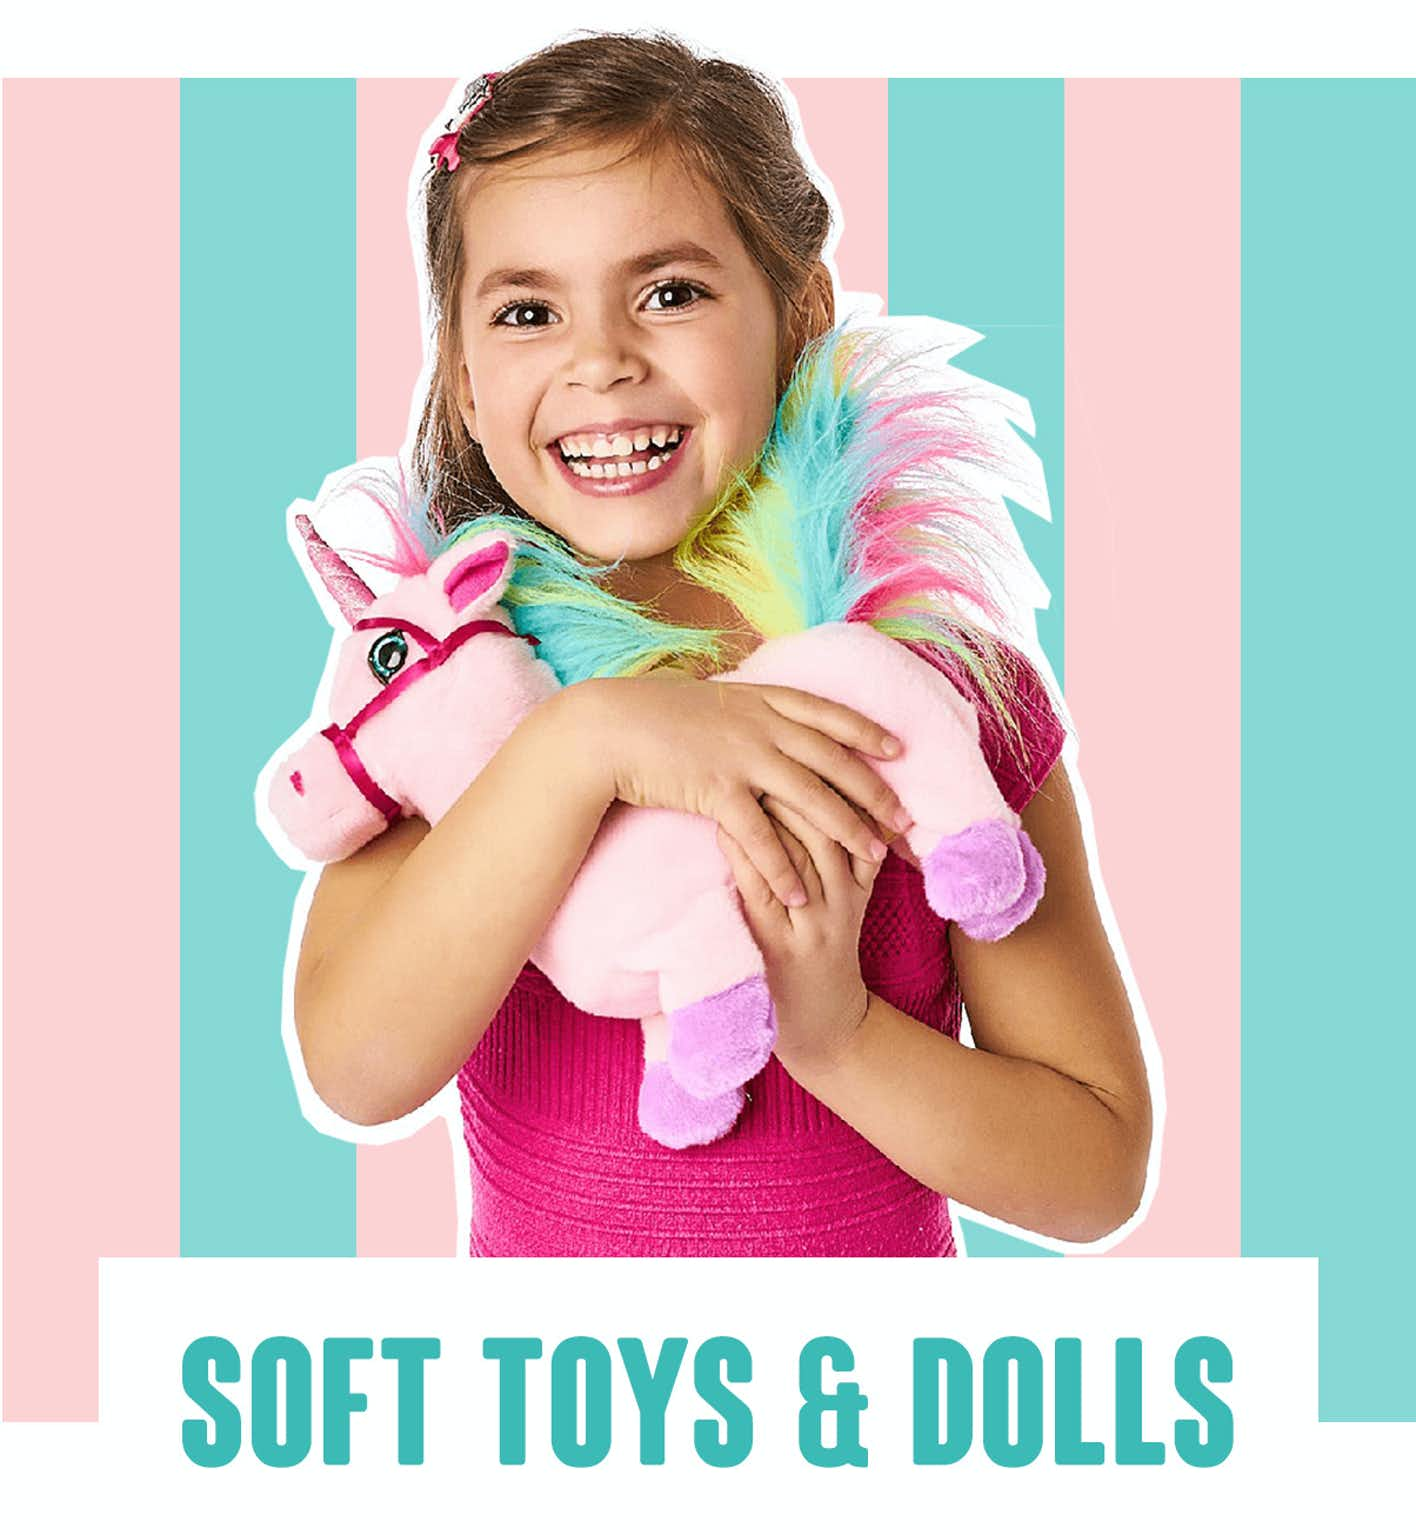 Shop Soft Toys & Dolls